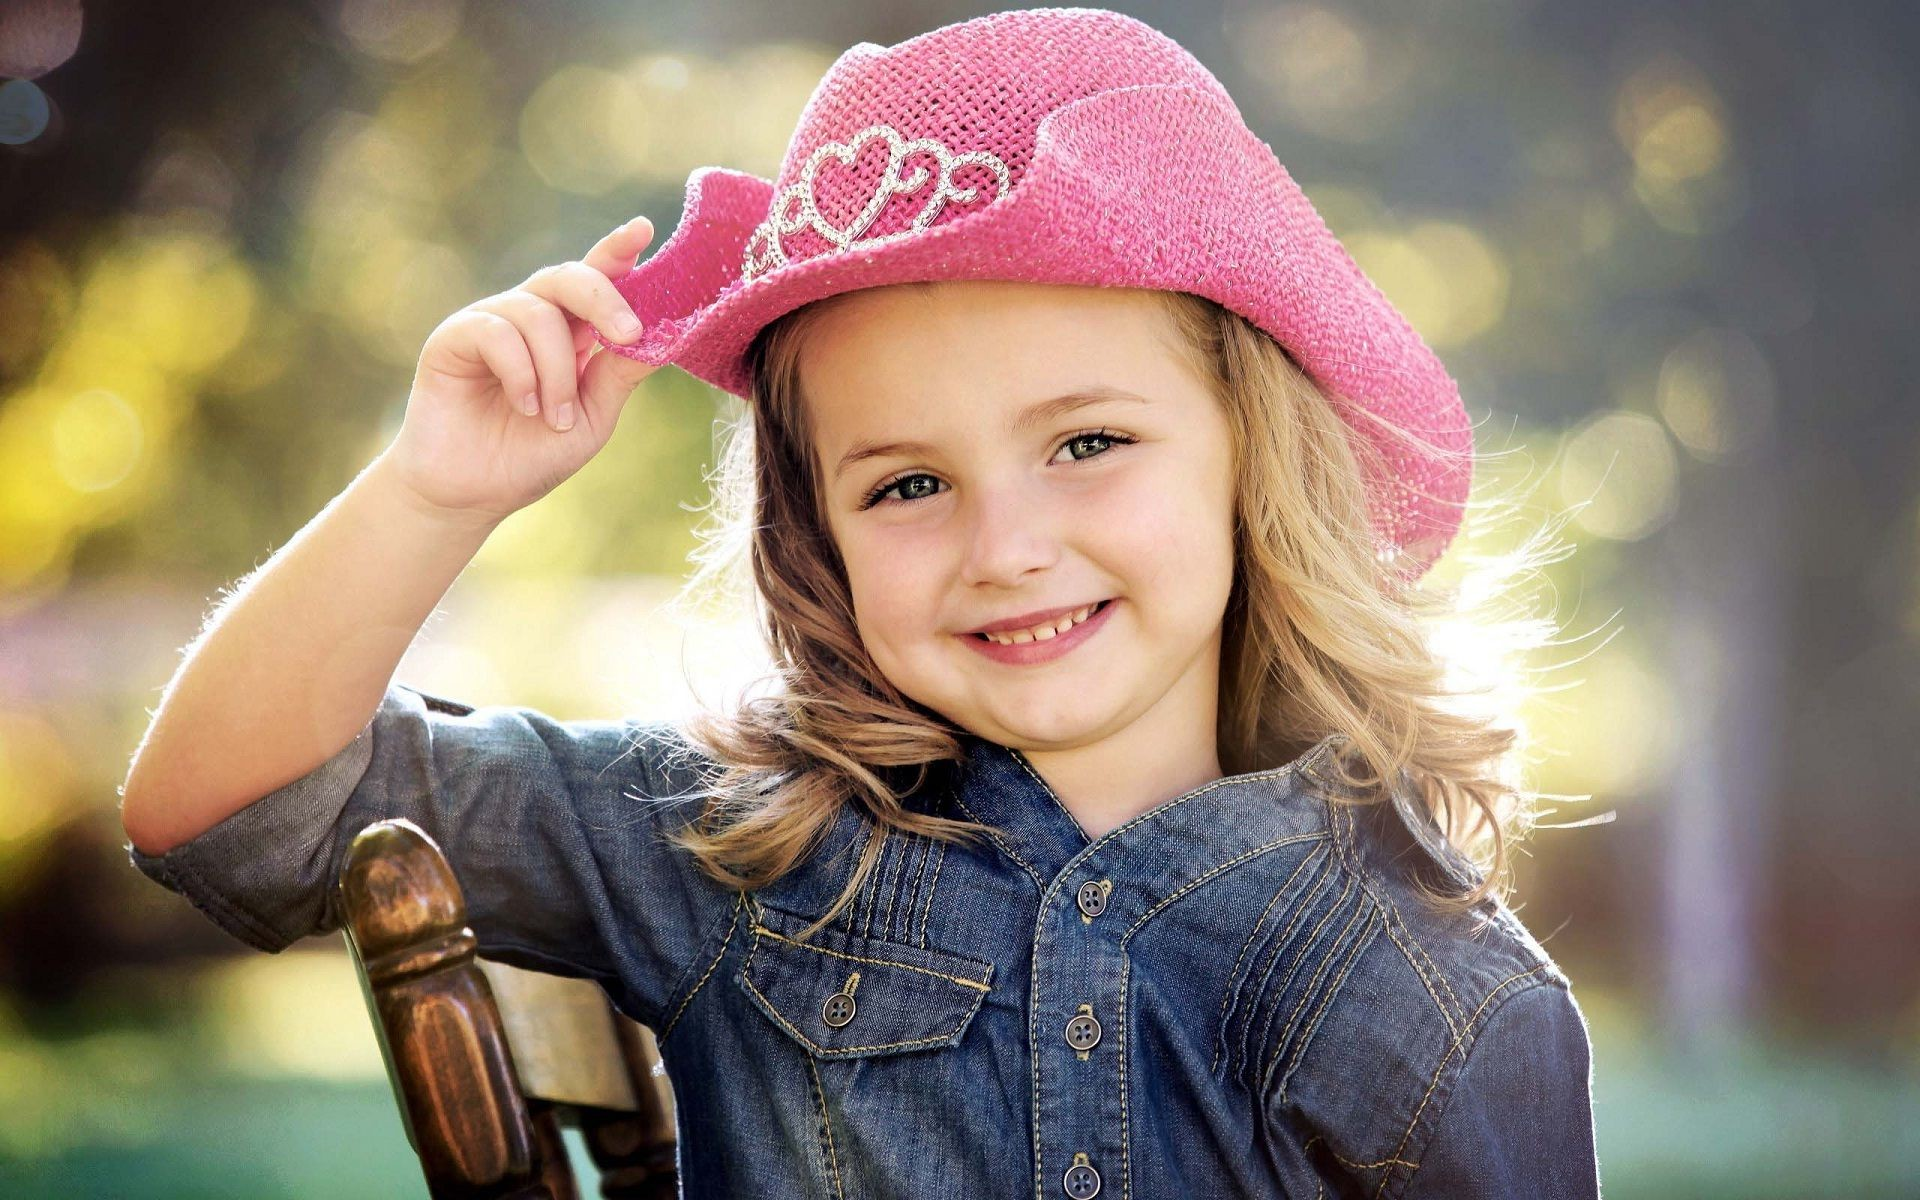 baby girl wallpaper images 70 images